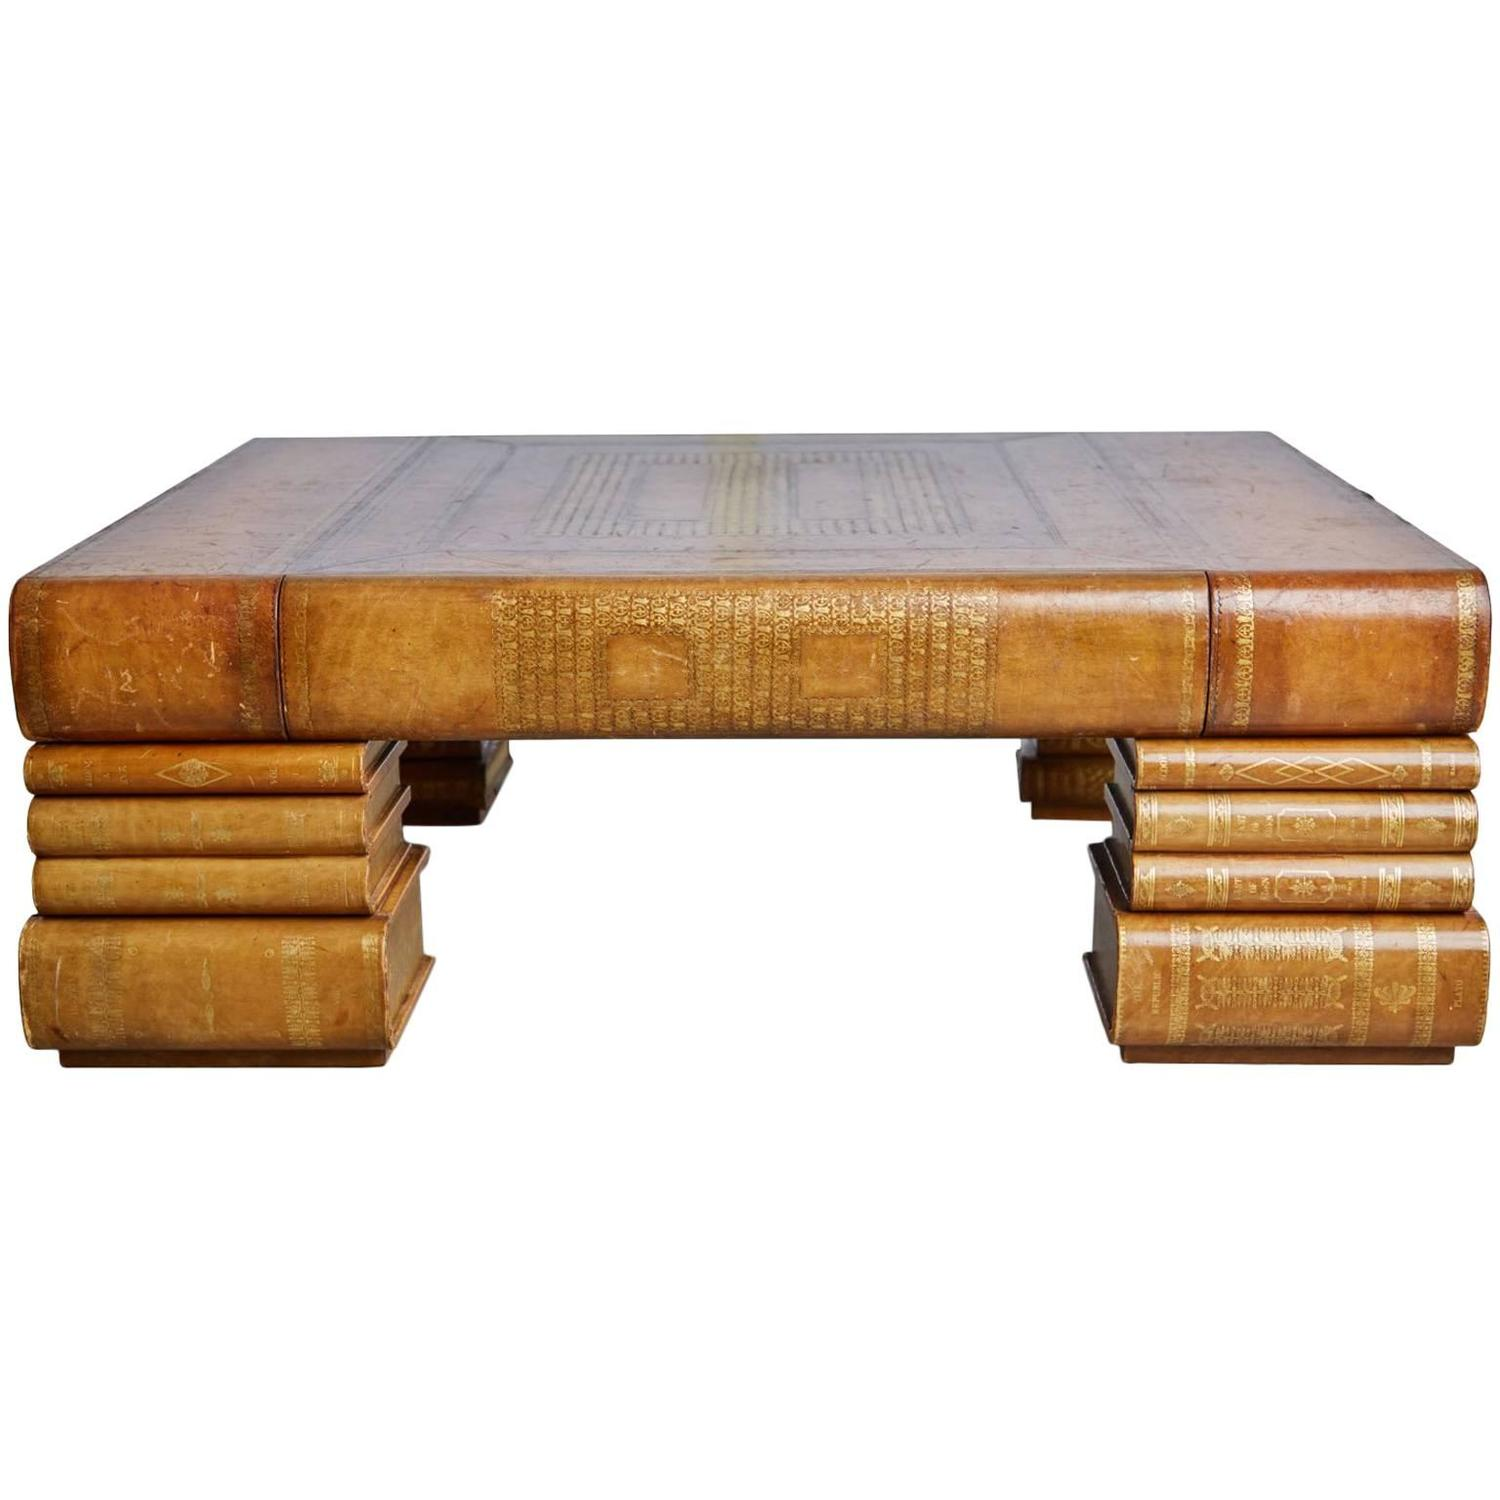 Maitland Smith Oversized Embossed Leather Books Coffee Table at